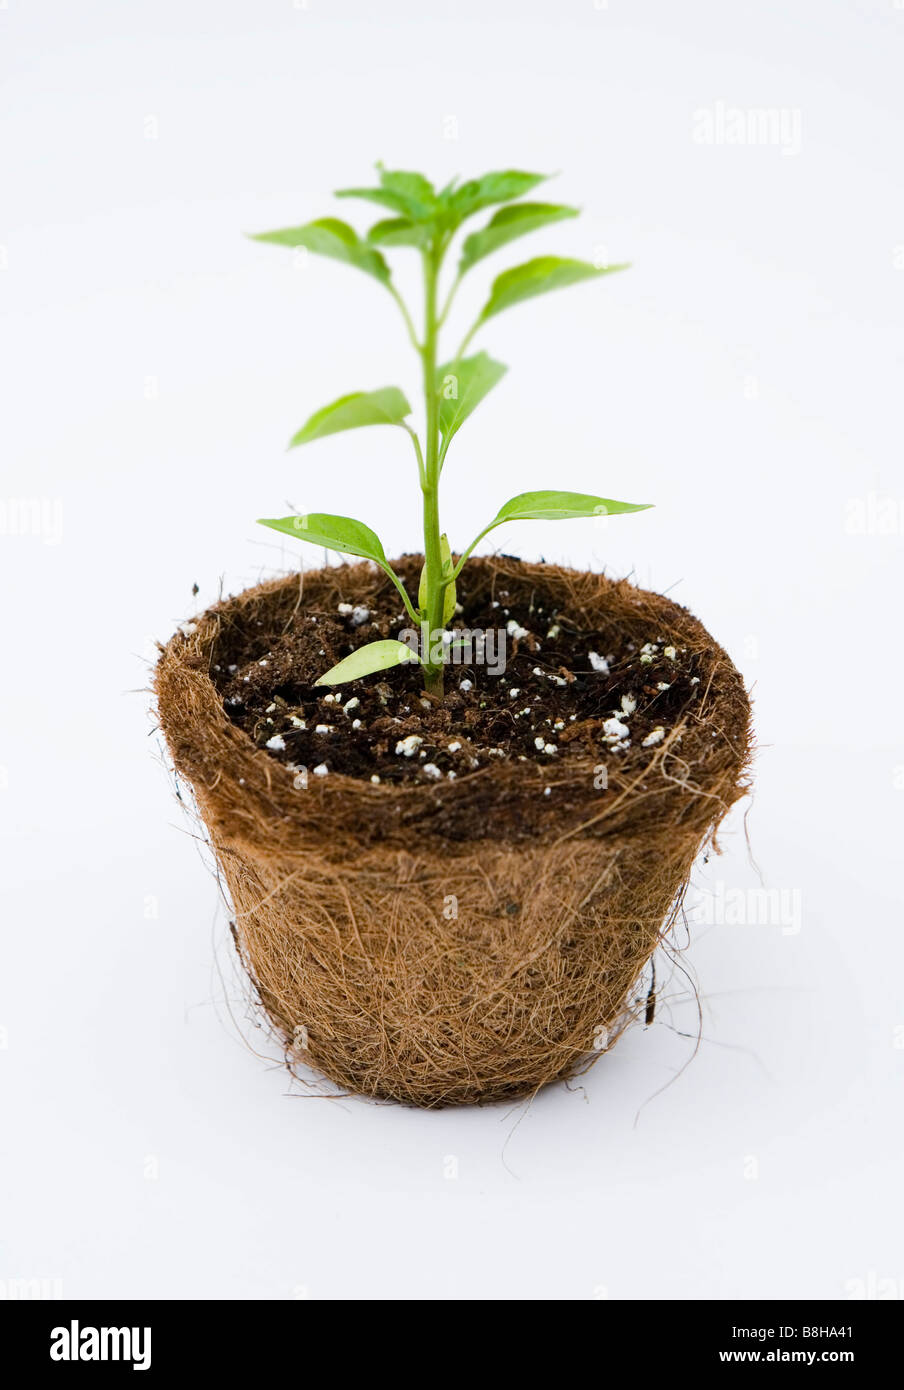 Chilli plant - Thai Dragon - Stock Image